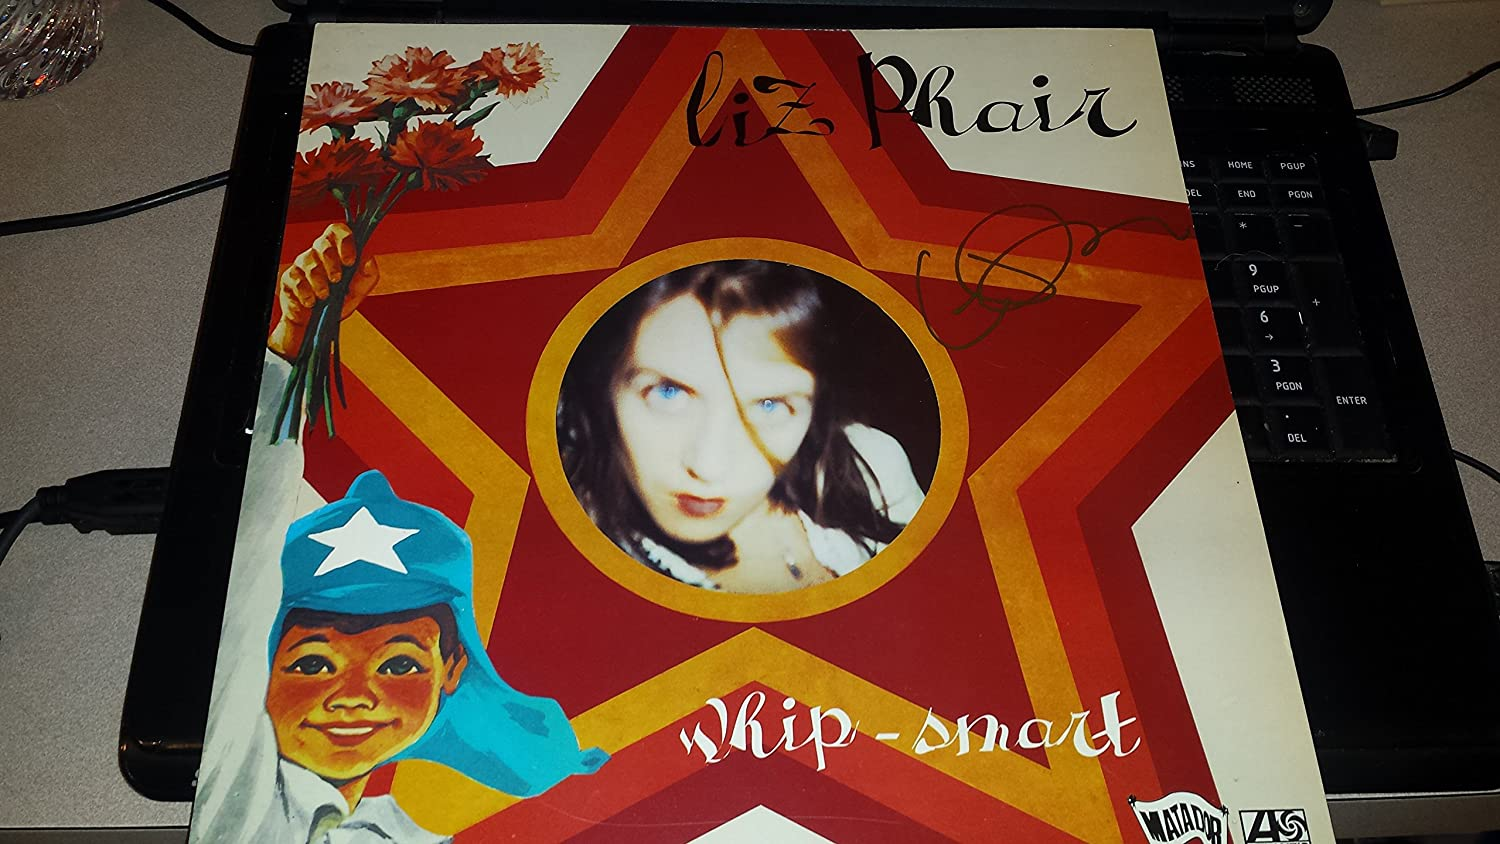 LIZ PHAIR signed 12x12 album flat 1994\' Whip Smart/UACC Registered Dealer # 212 LIZ PHAIR signed 12x12 album flat 1994 Whip Smart/UACC Registered Dealer # 212